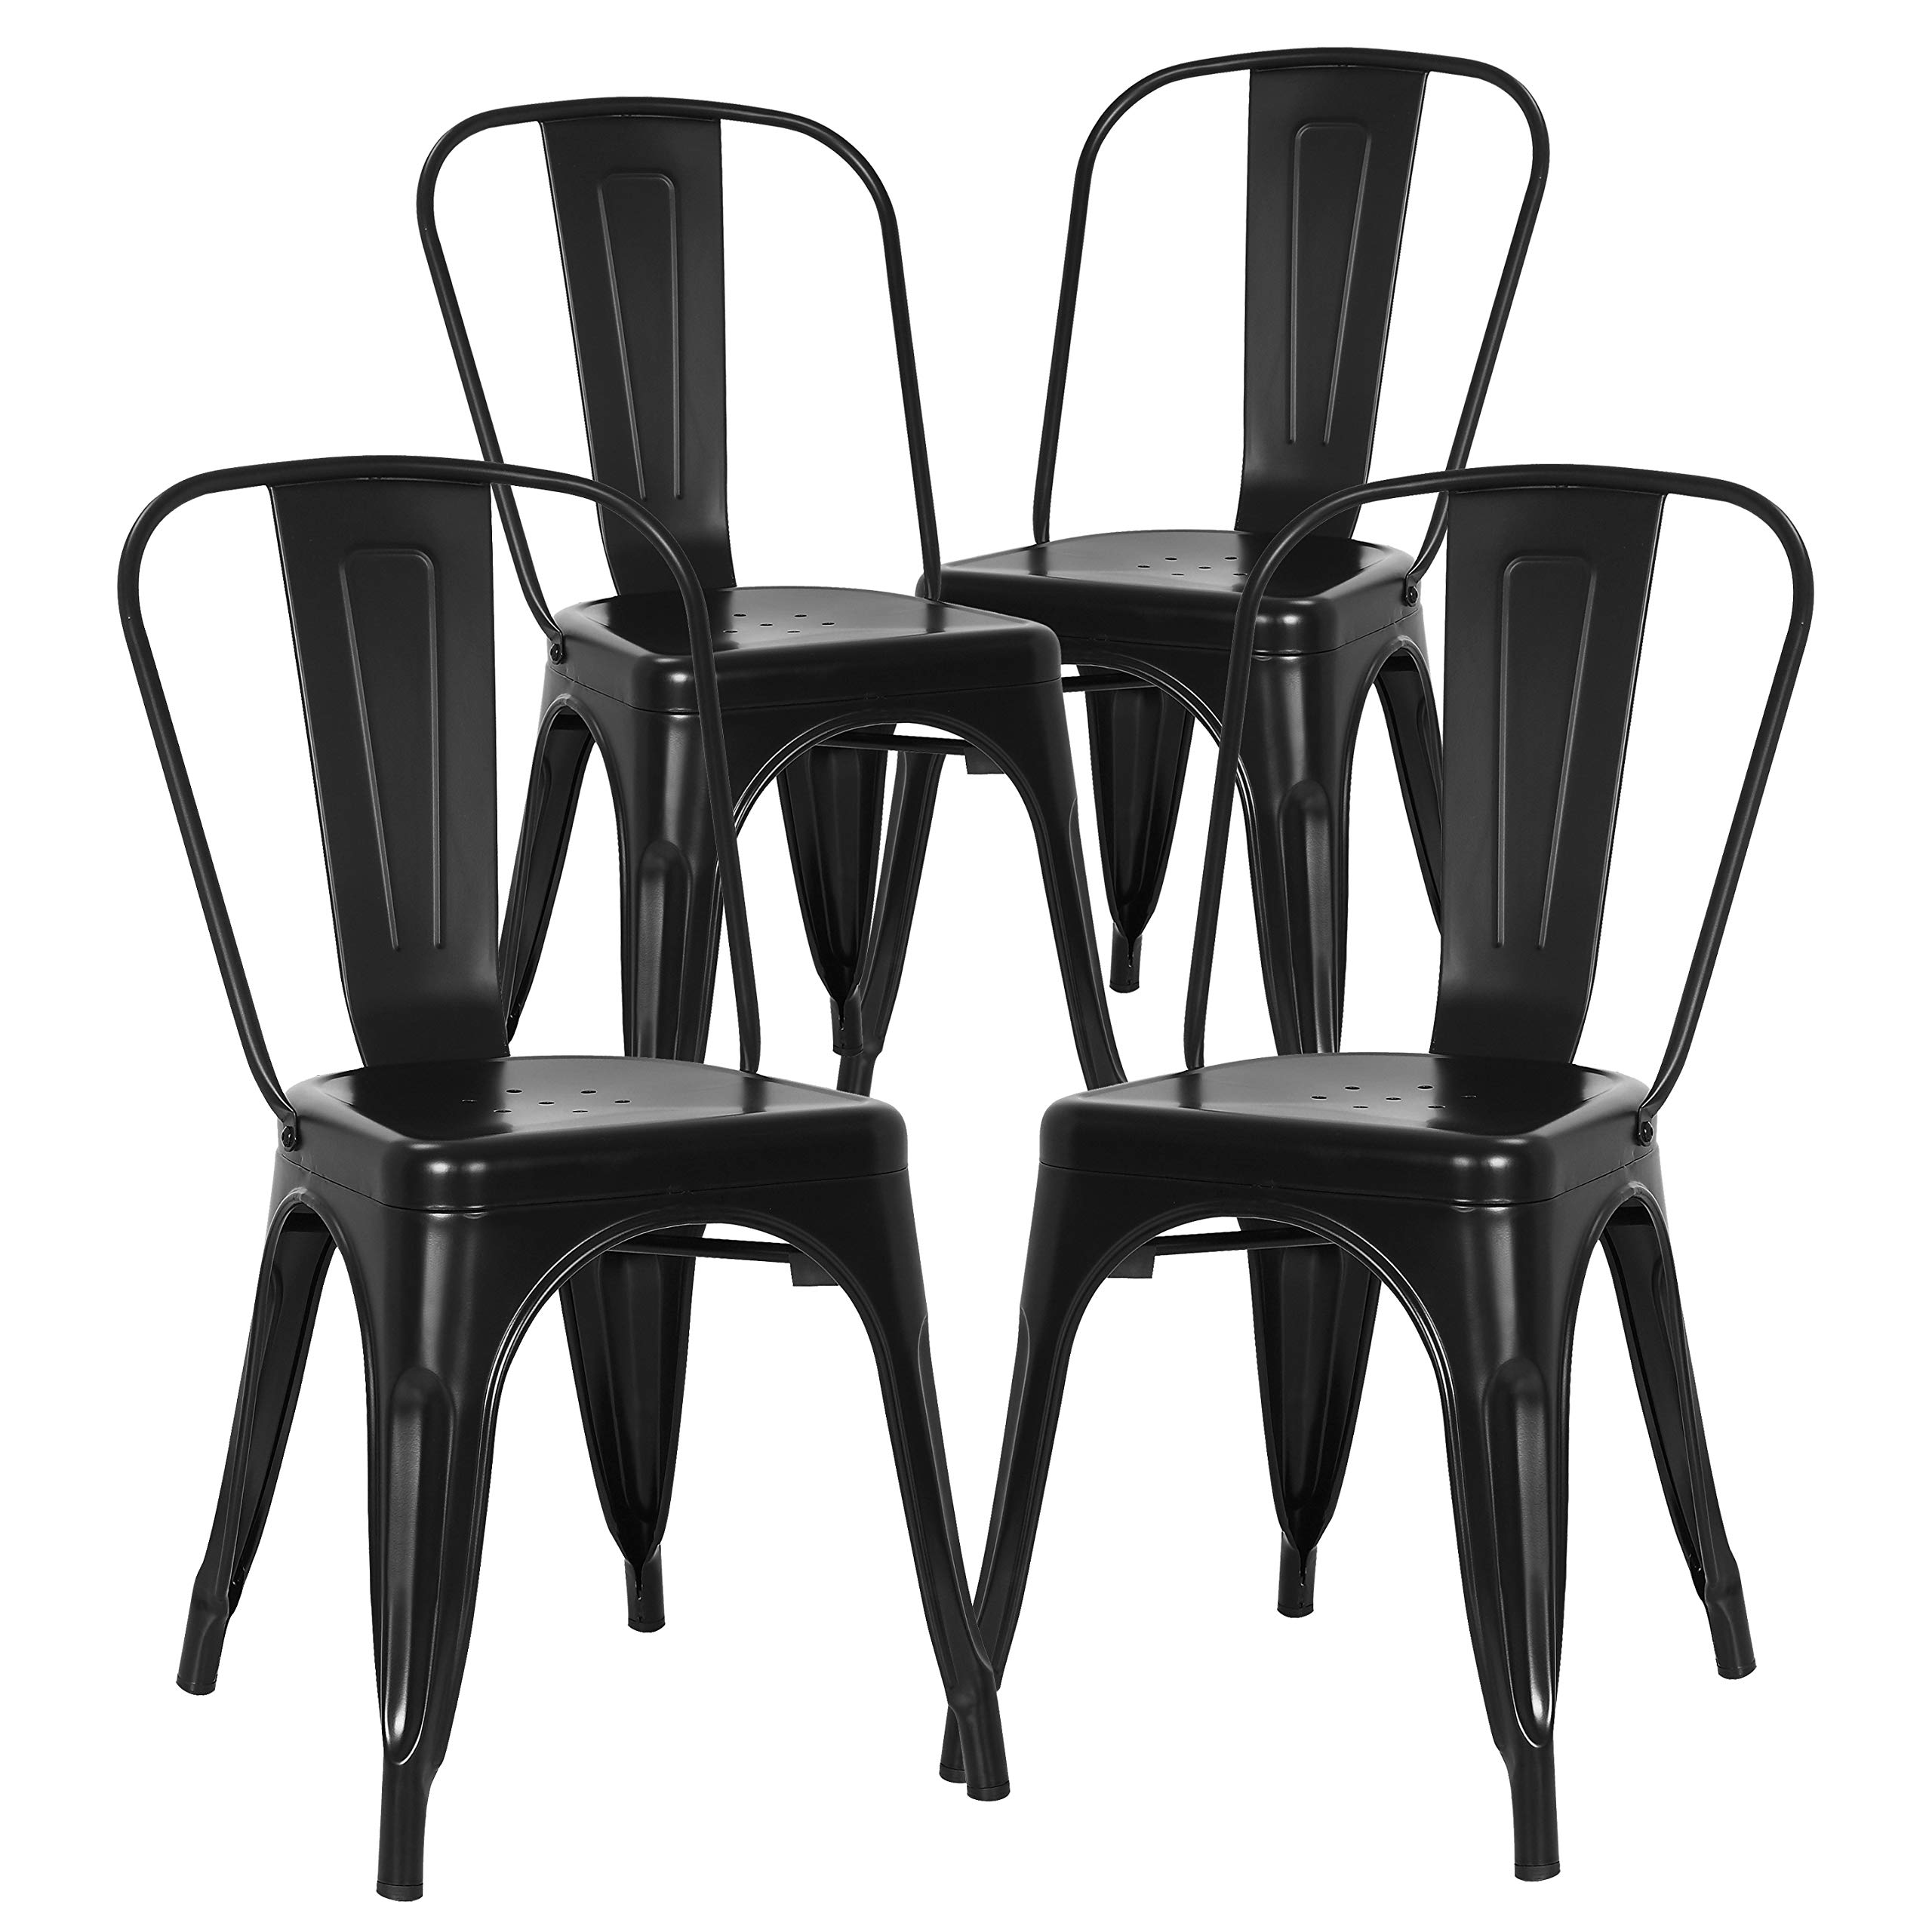 Poly and Bark Trattoria Kitchen and Dining Metal Side Chair in Black (Set of 4) by POLY & BARK